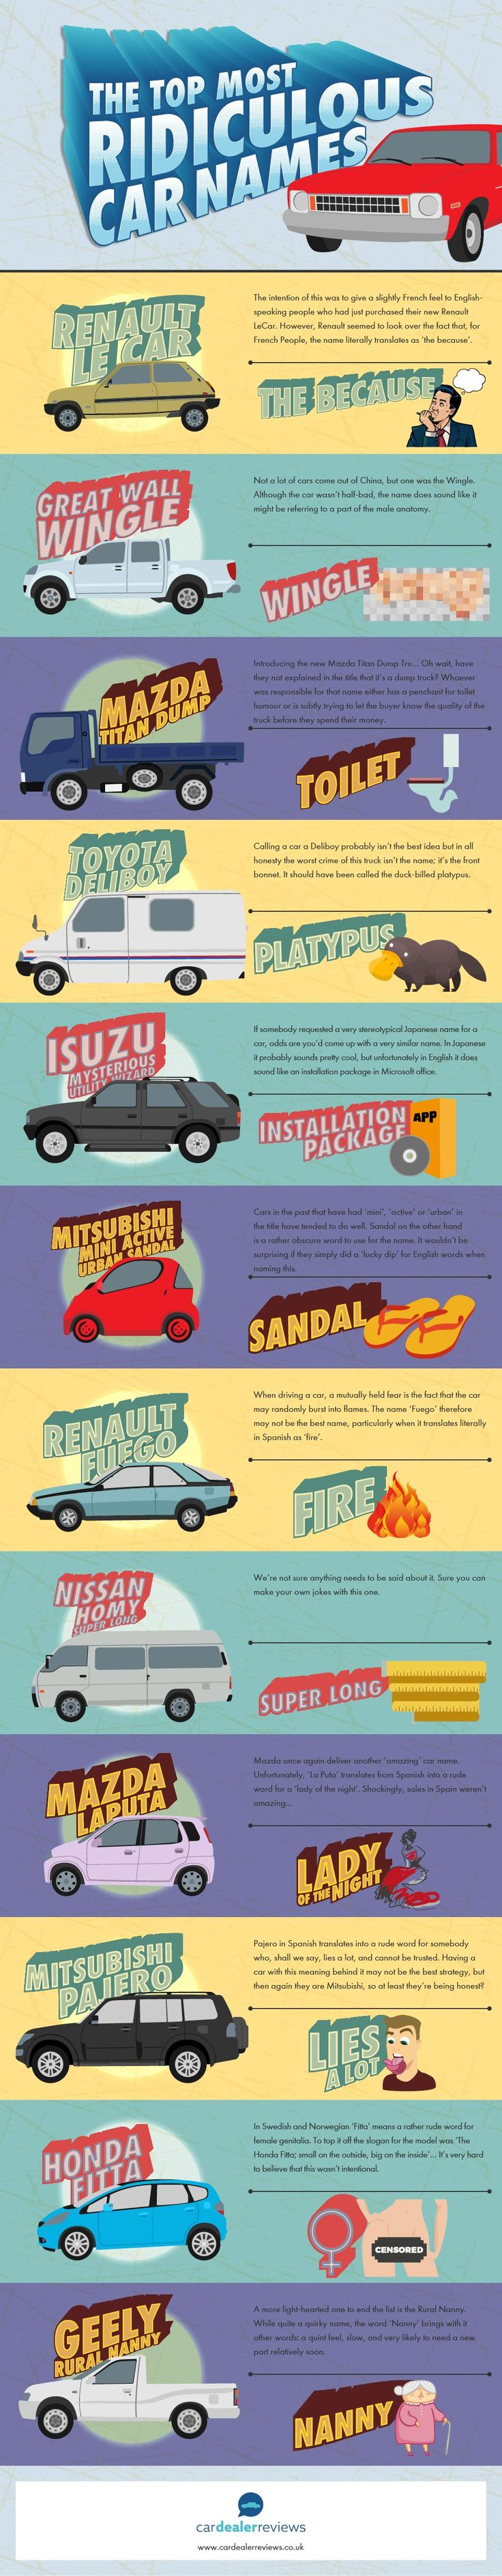 the top most ridiculous car names infographic